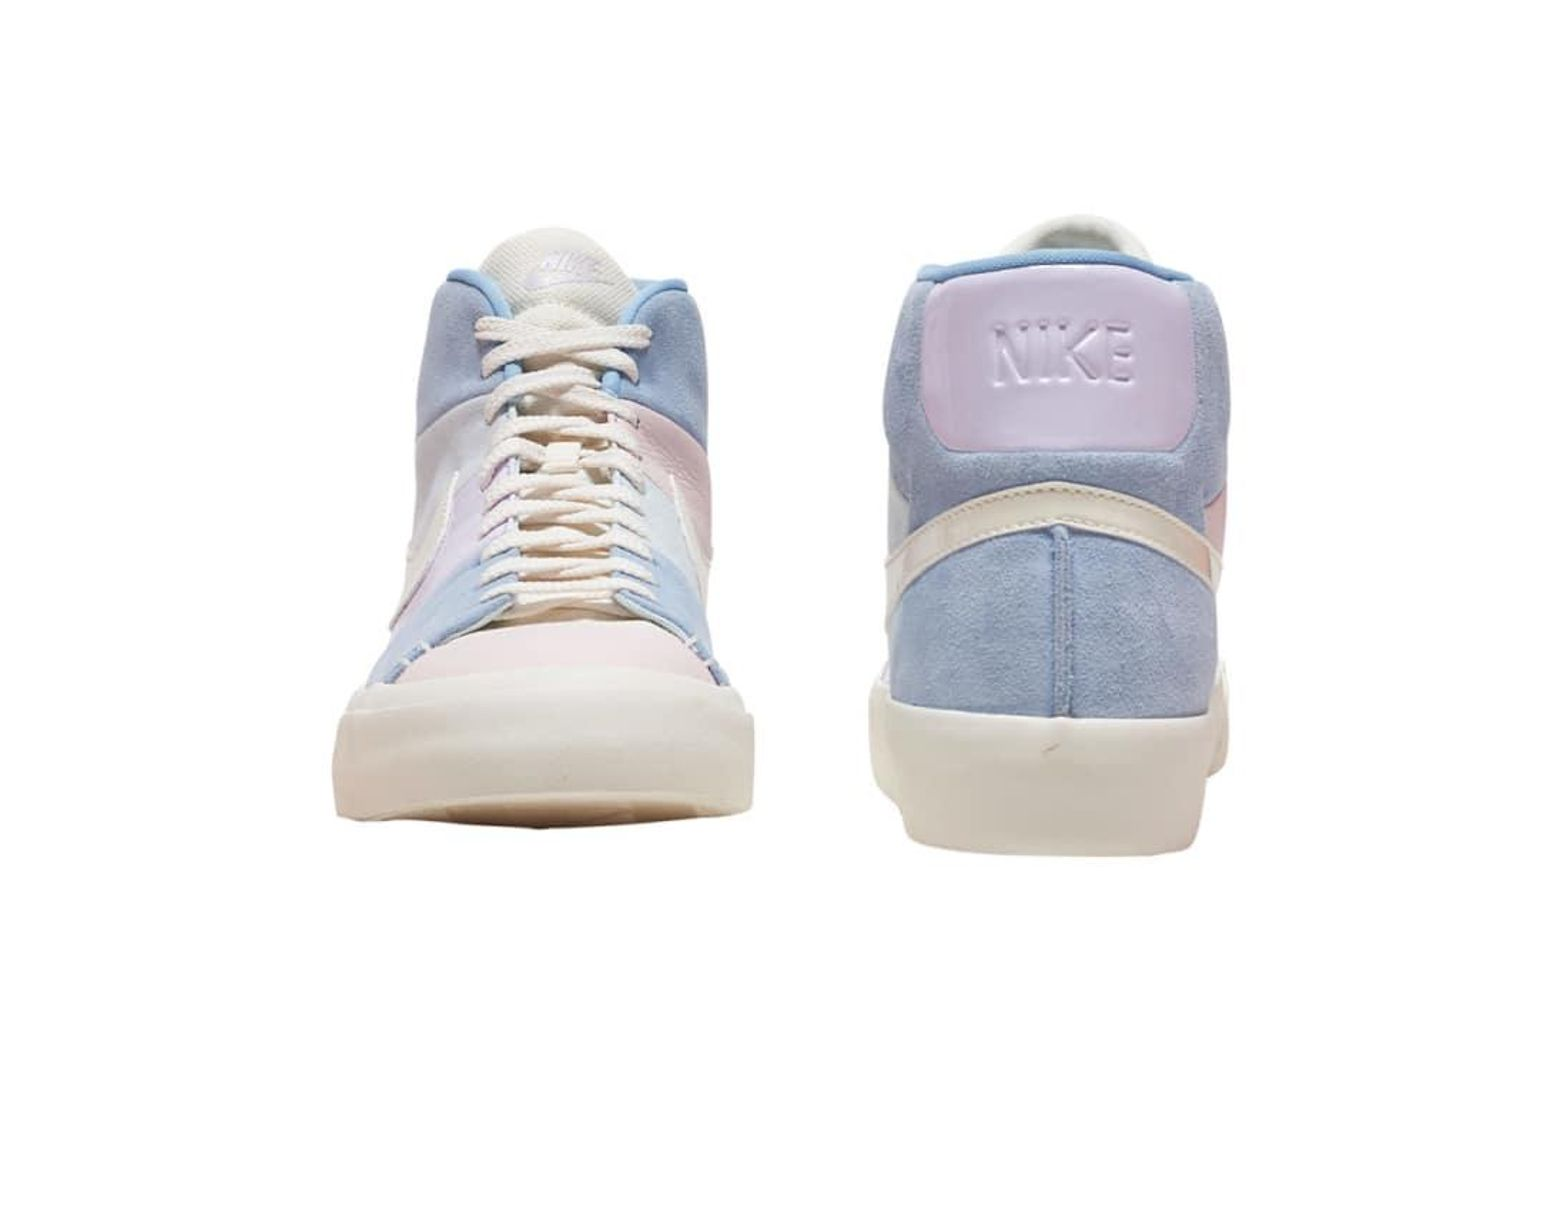 official photos 2ddc6 cb521 Nike Blazer Royal Easter Qs in Blue for Men - Save 25% - Lyst